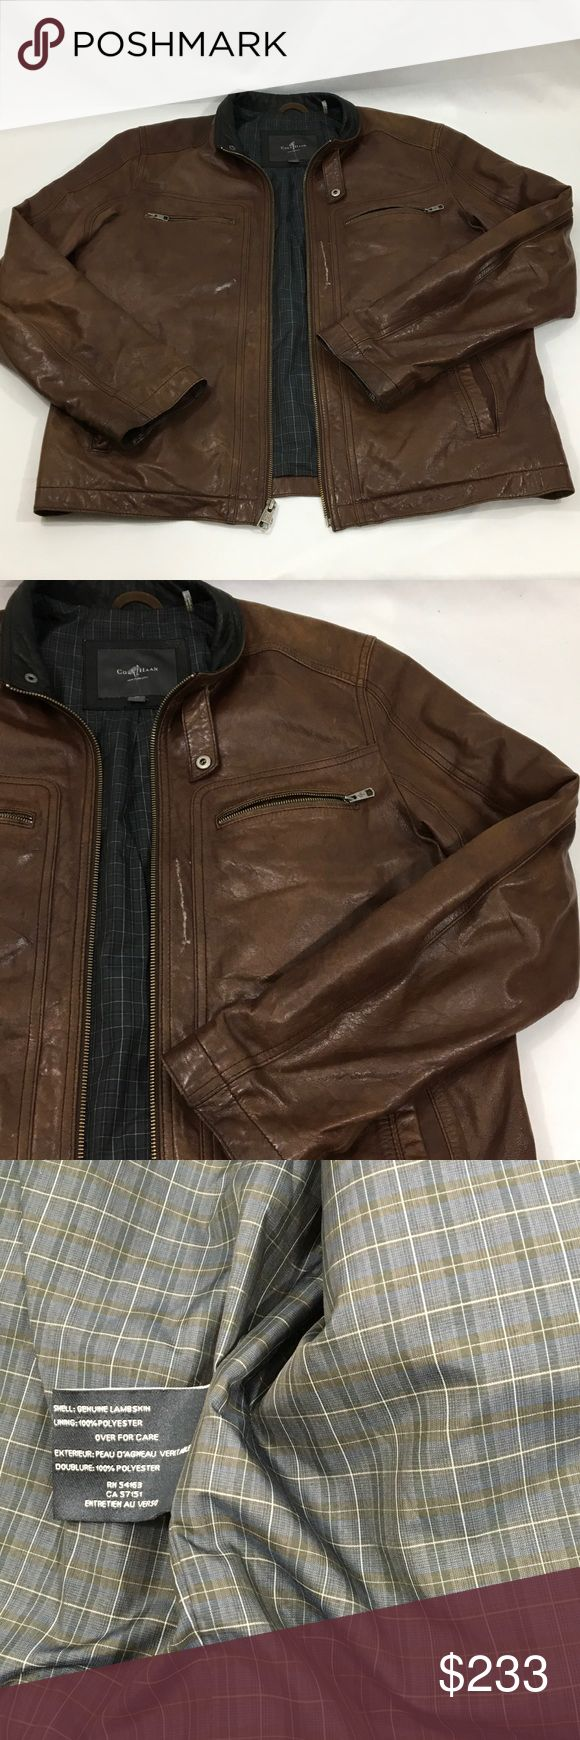 Cole Haan Brown Lambskin Leather Jacket Size M Worn a few times Cole Haan Jackets & Coats